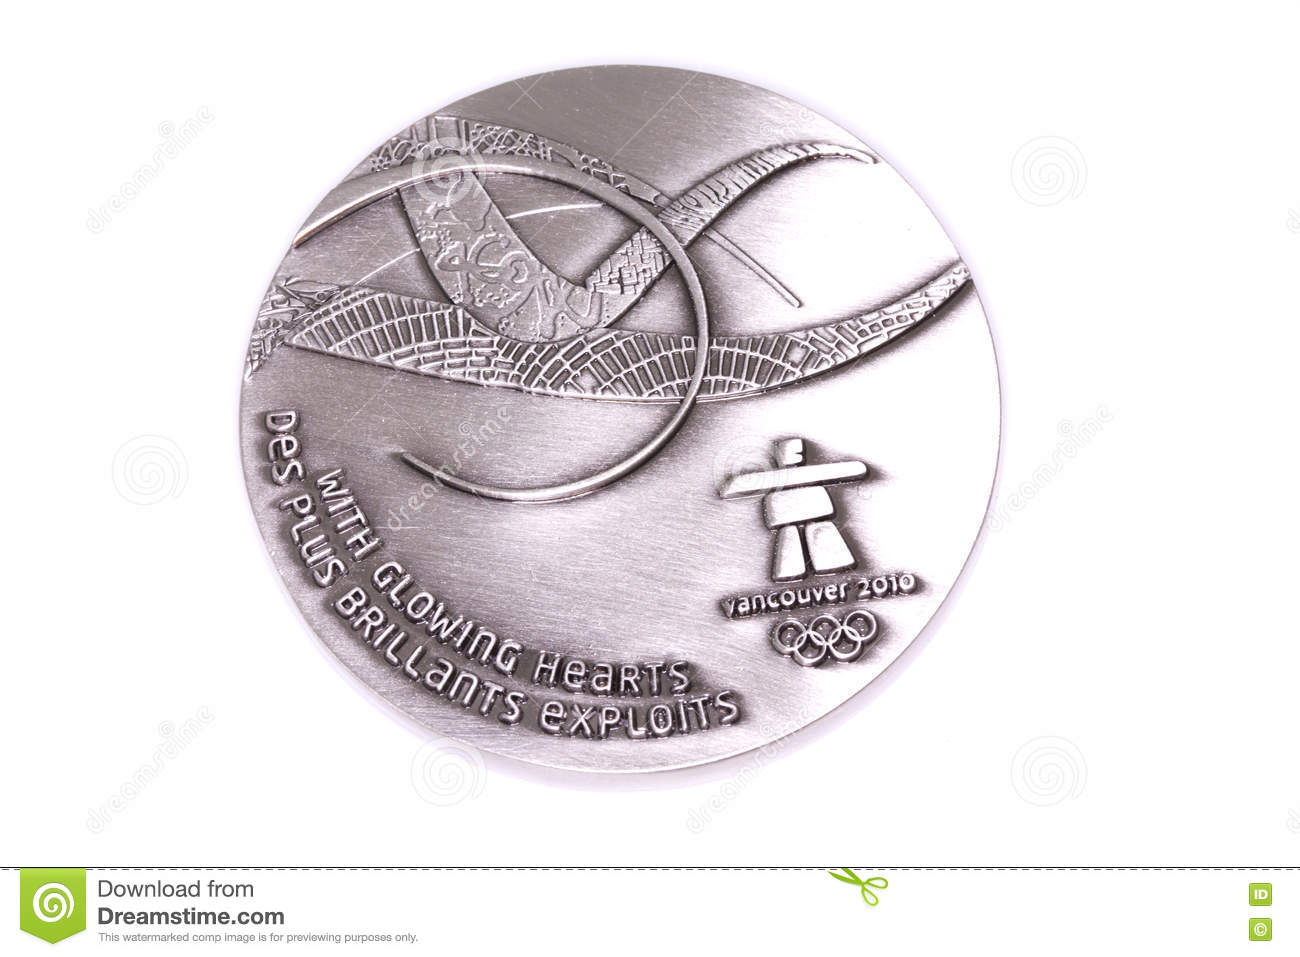 Vancouver 2010 Winter Olympic Games Participation Medal